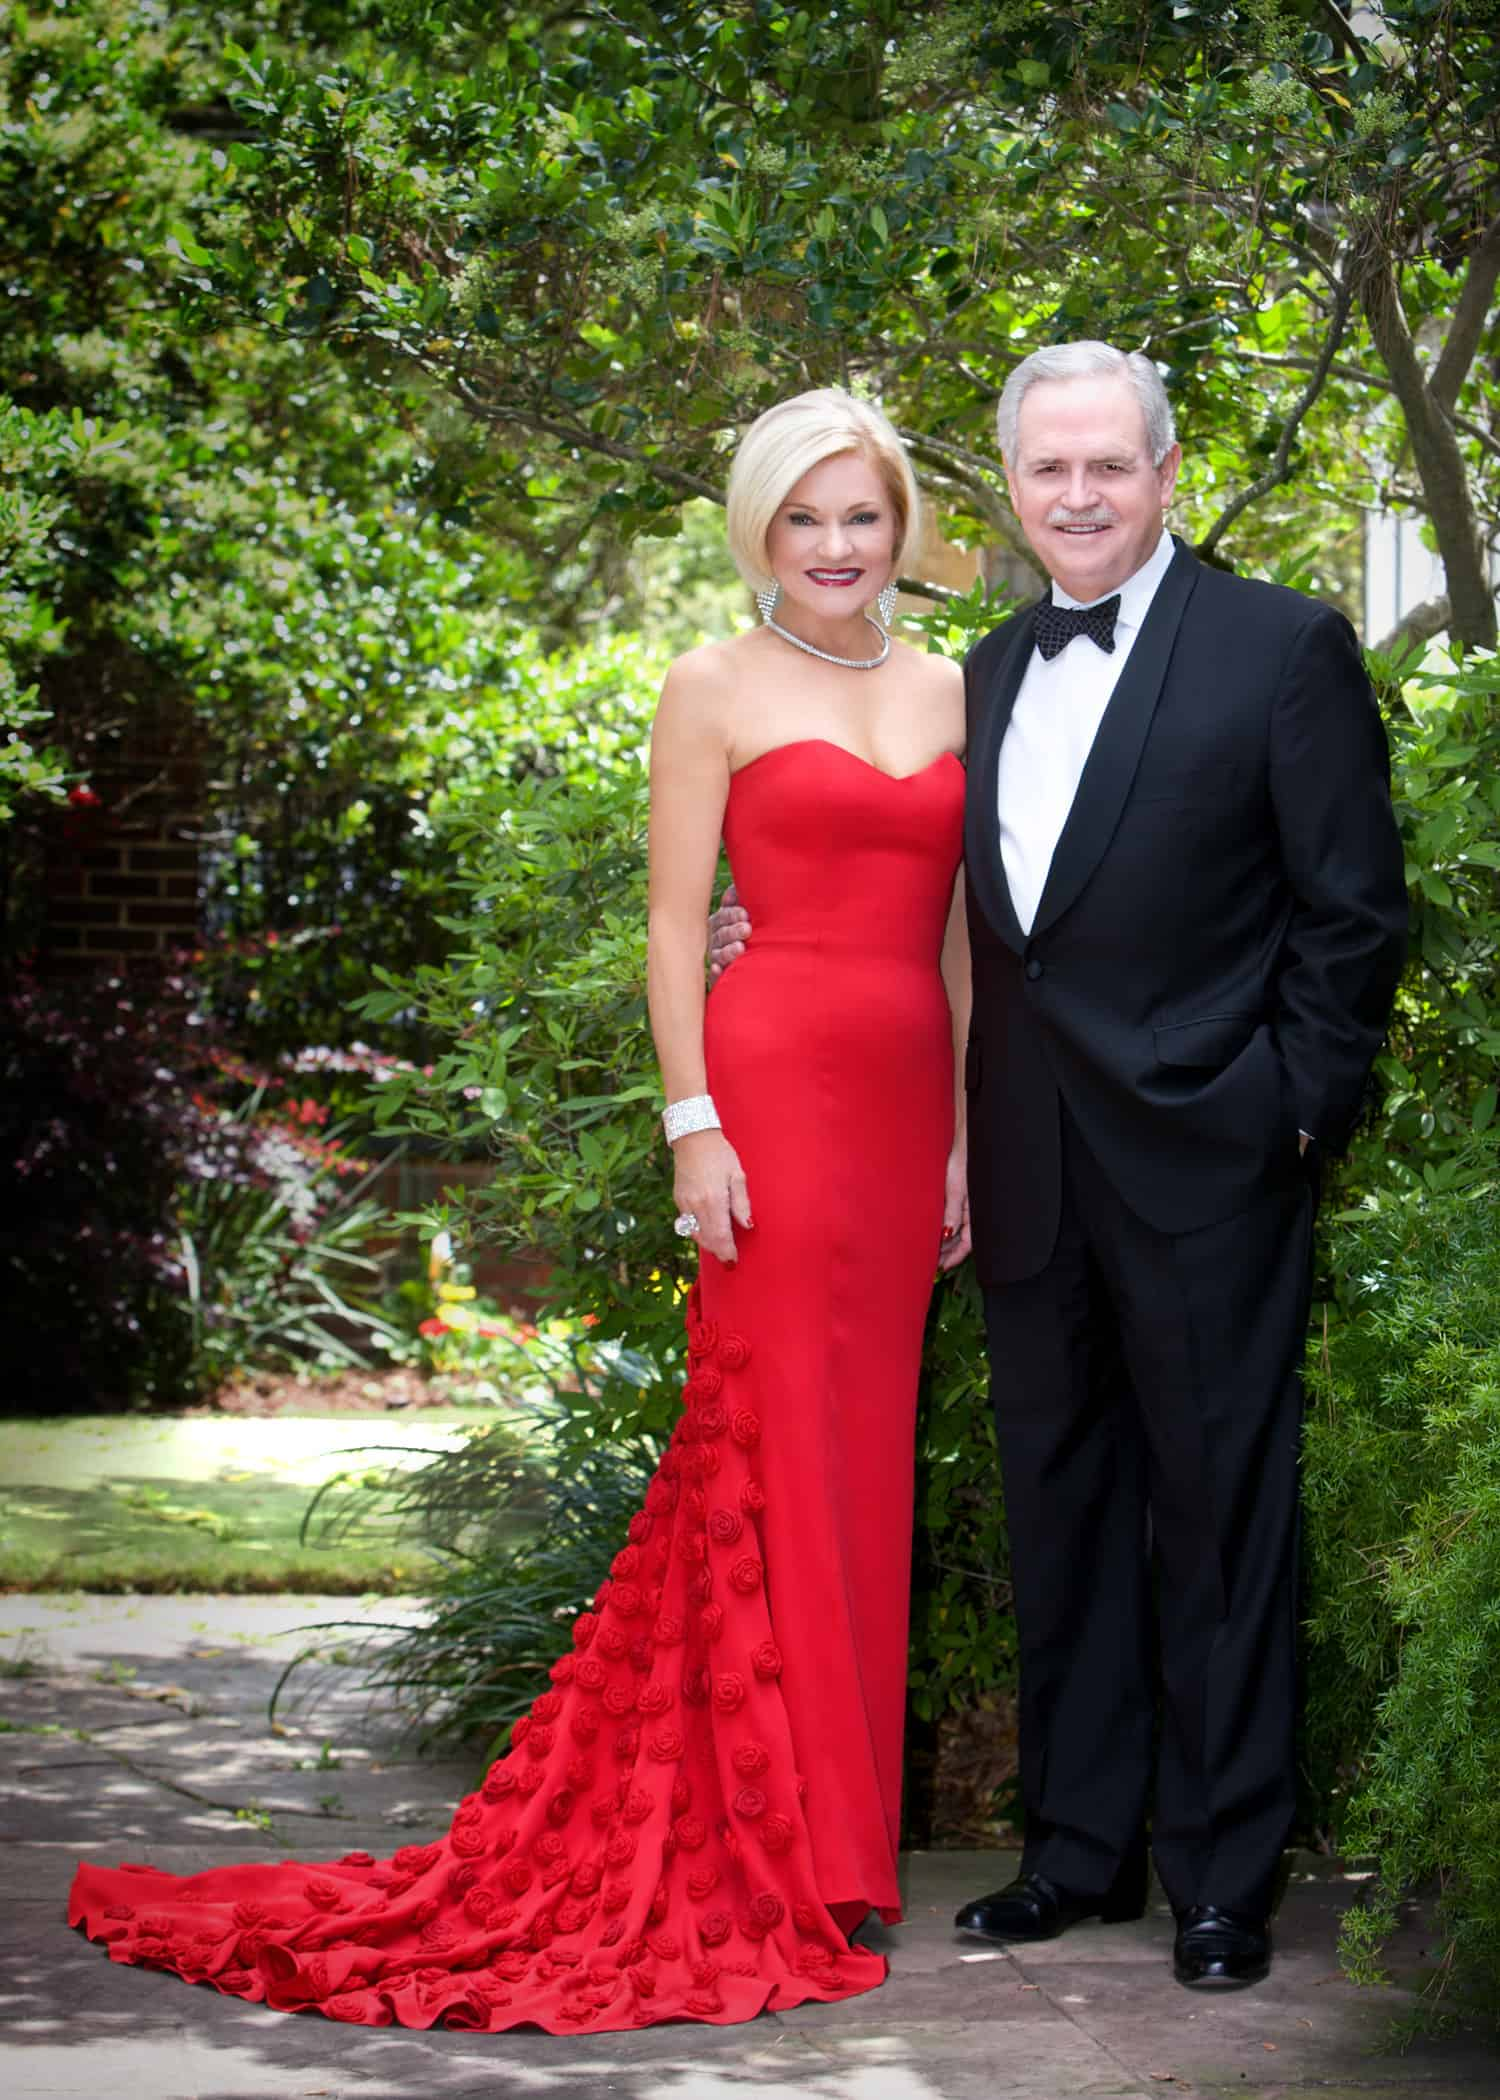 Evening_Gown_Tuxedo_formal_outdoor_Houston_home_portraits